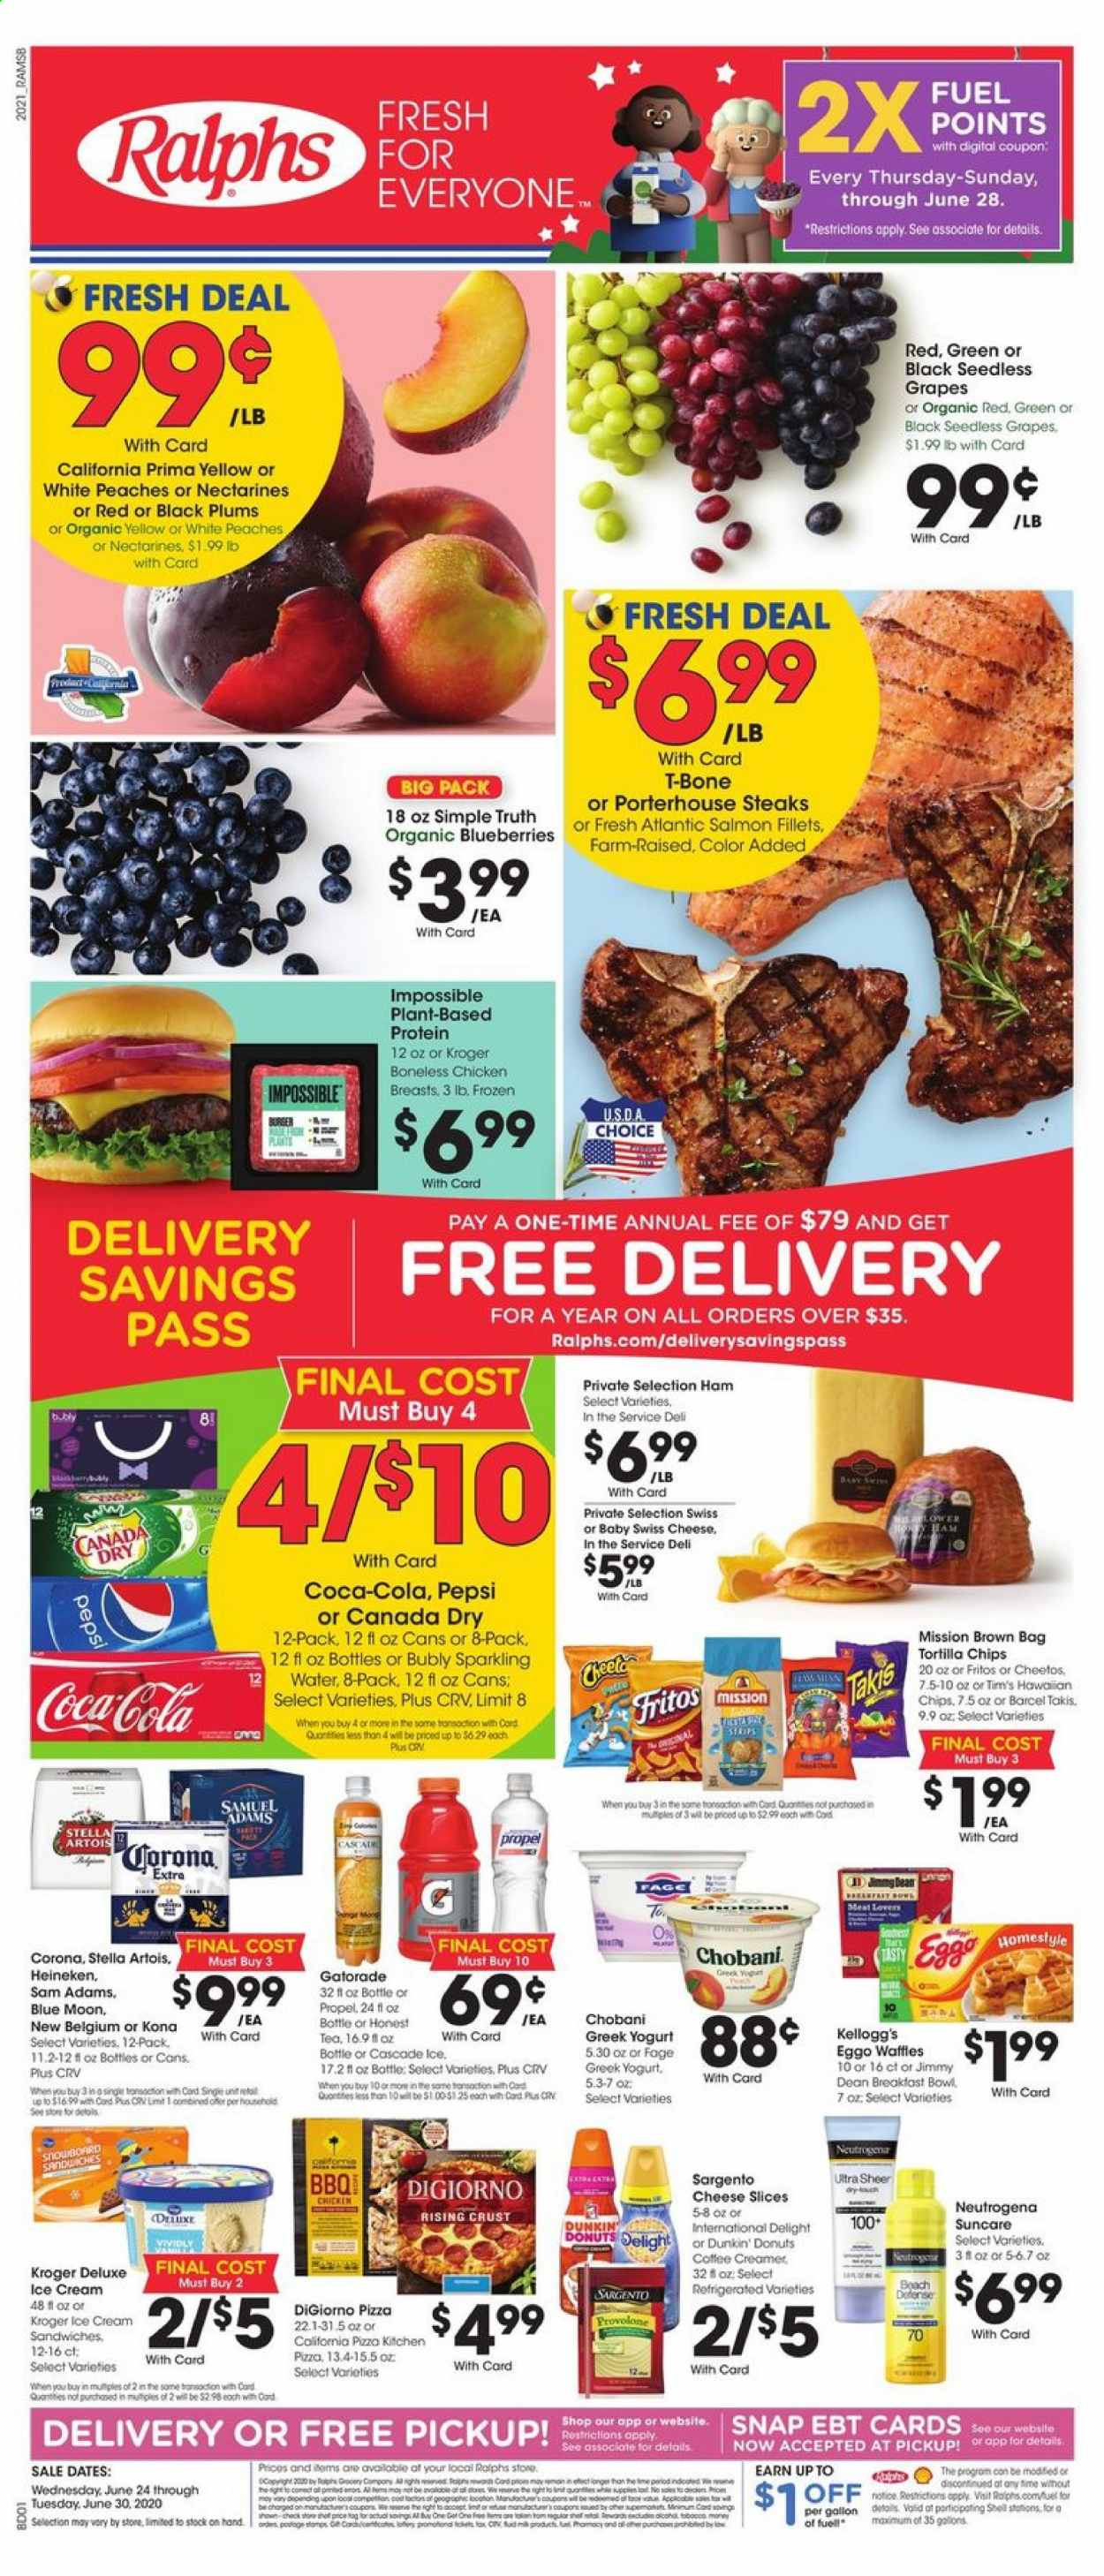 Ralphs Flyer  - 06.24.2020 - 06.30.2020. Page 1.